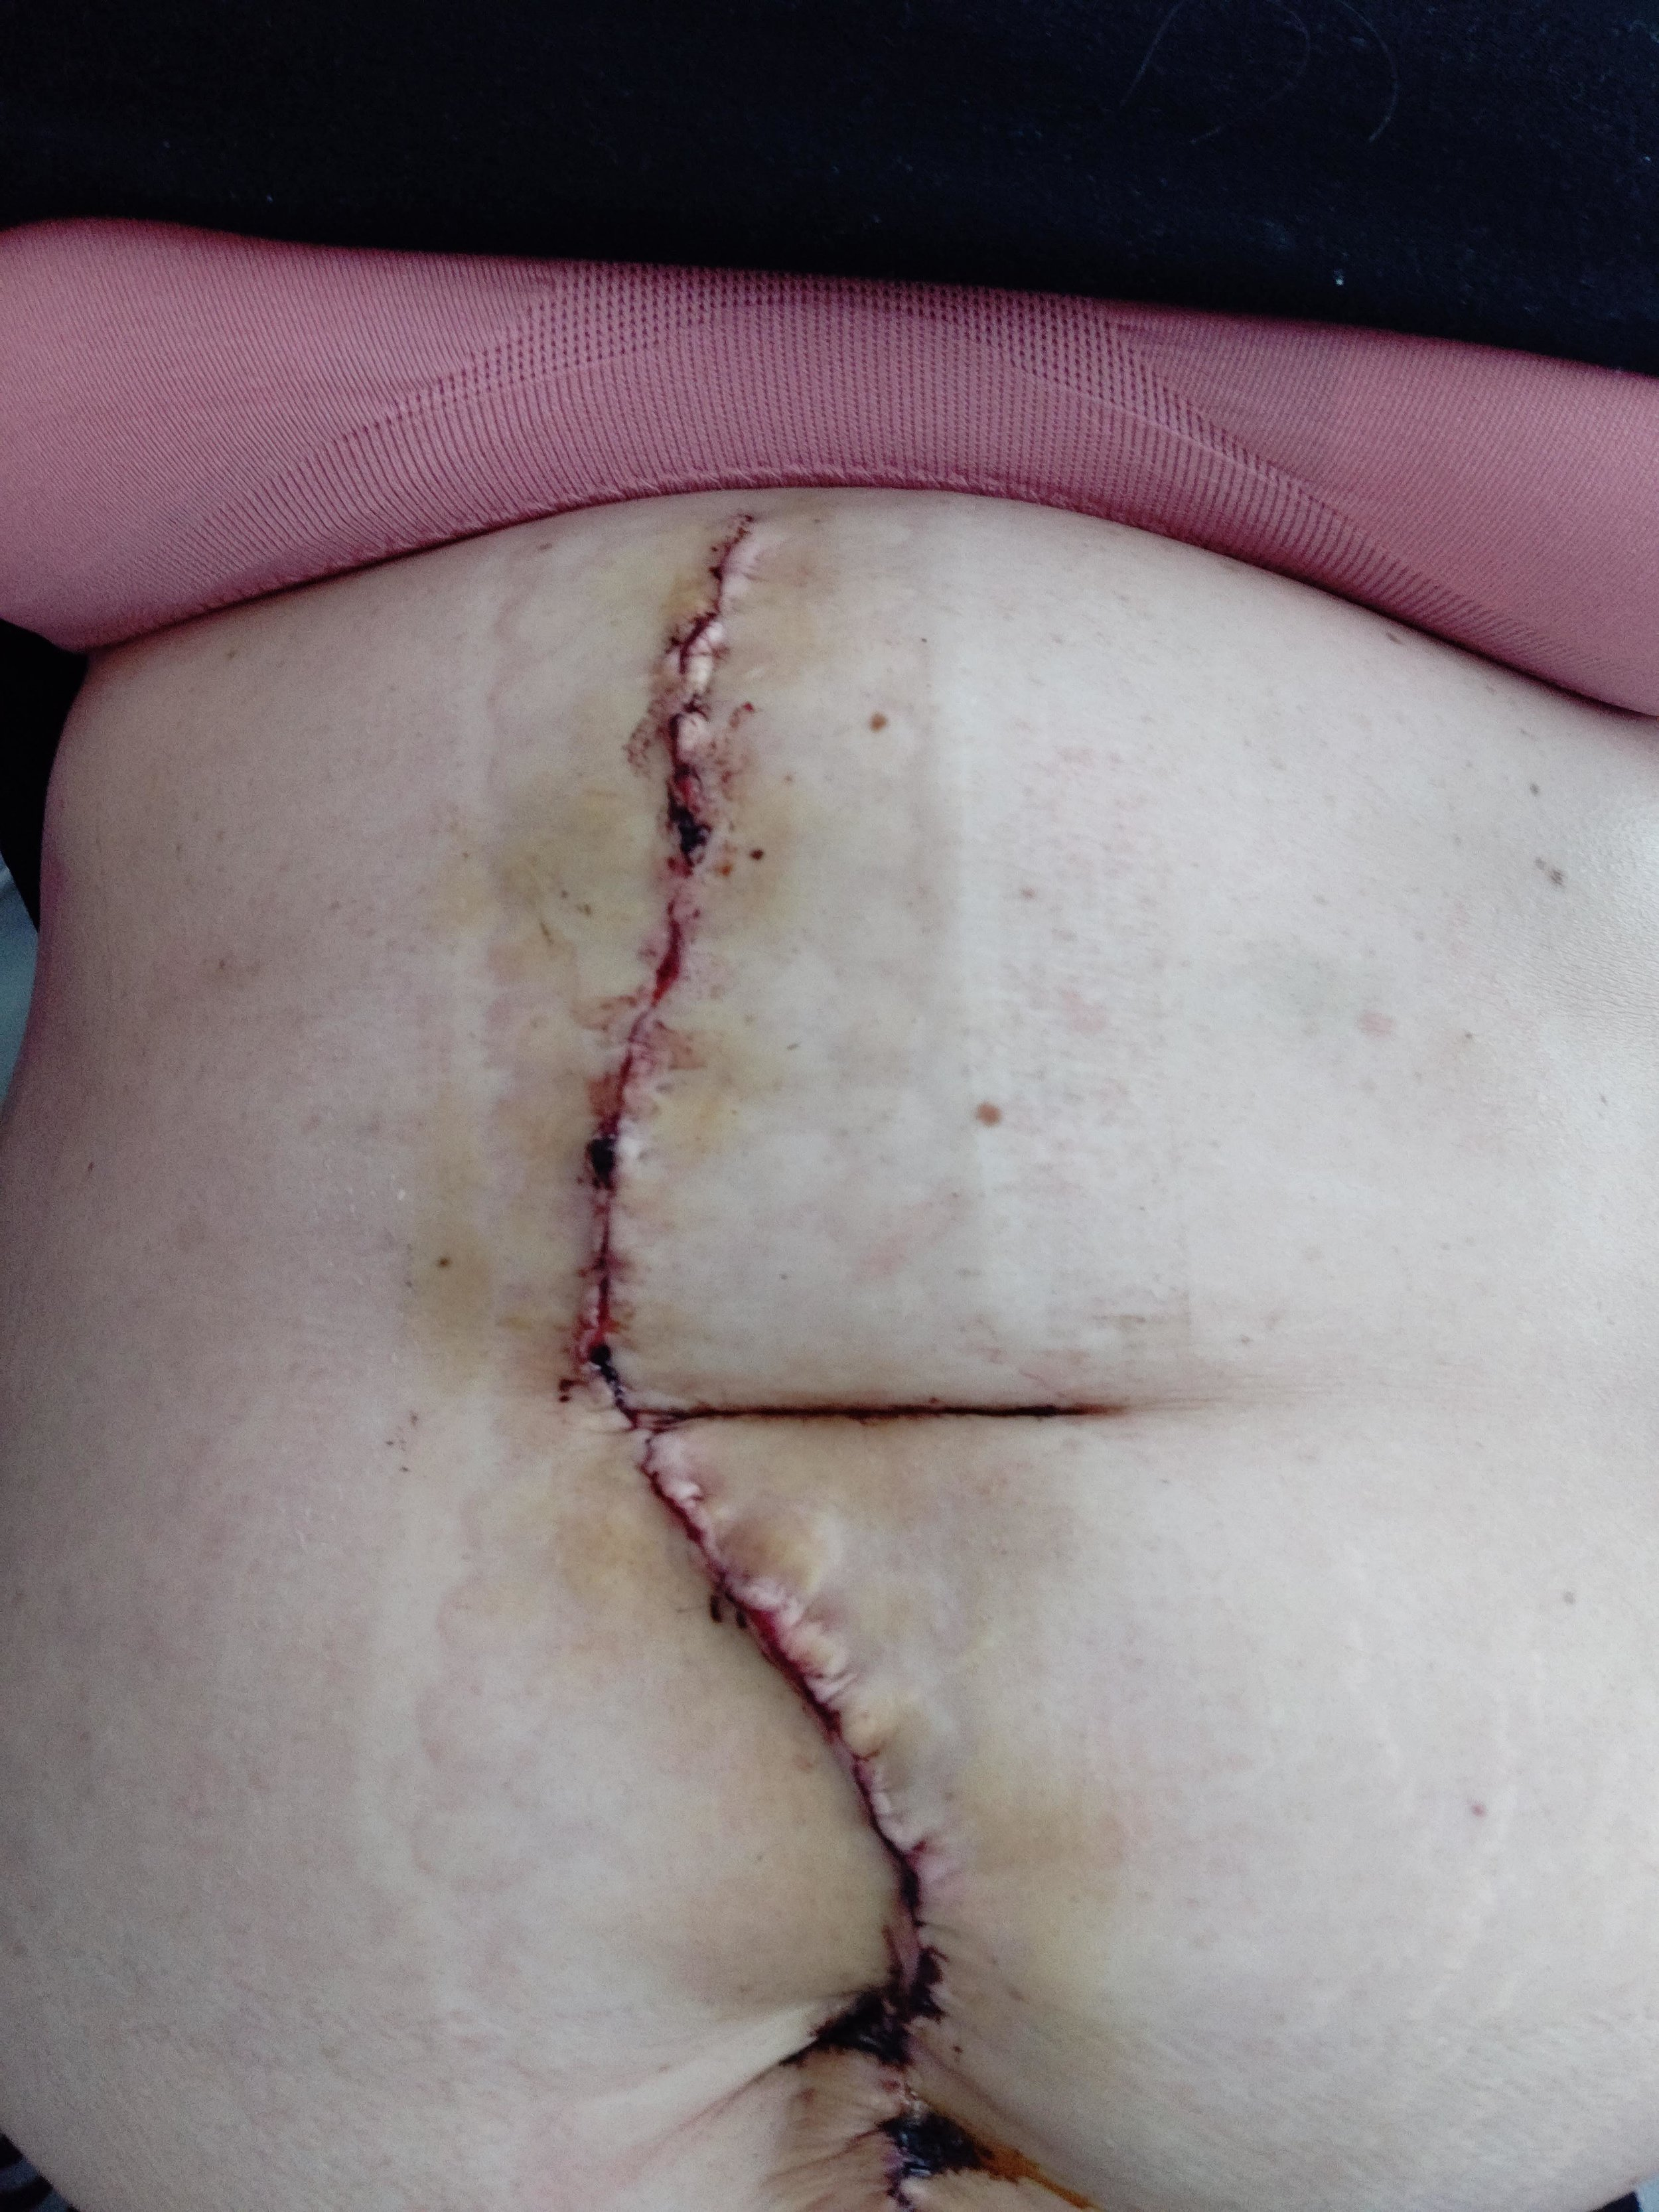 Post Op Aortofemoral Bypass Graft